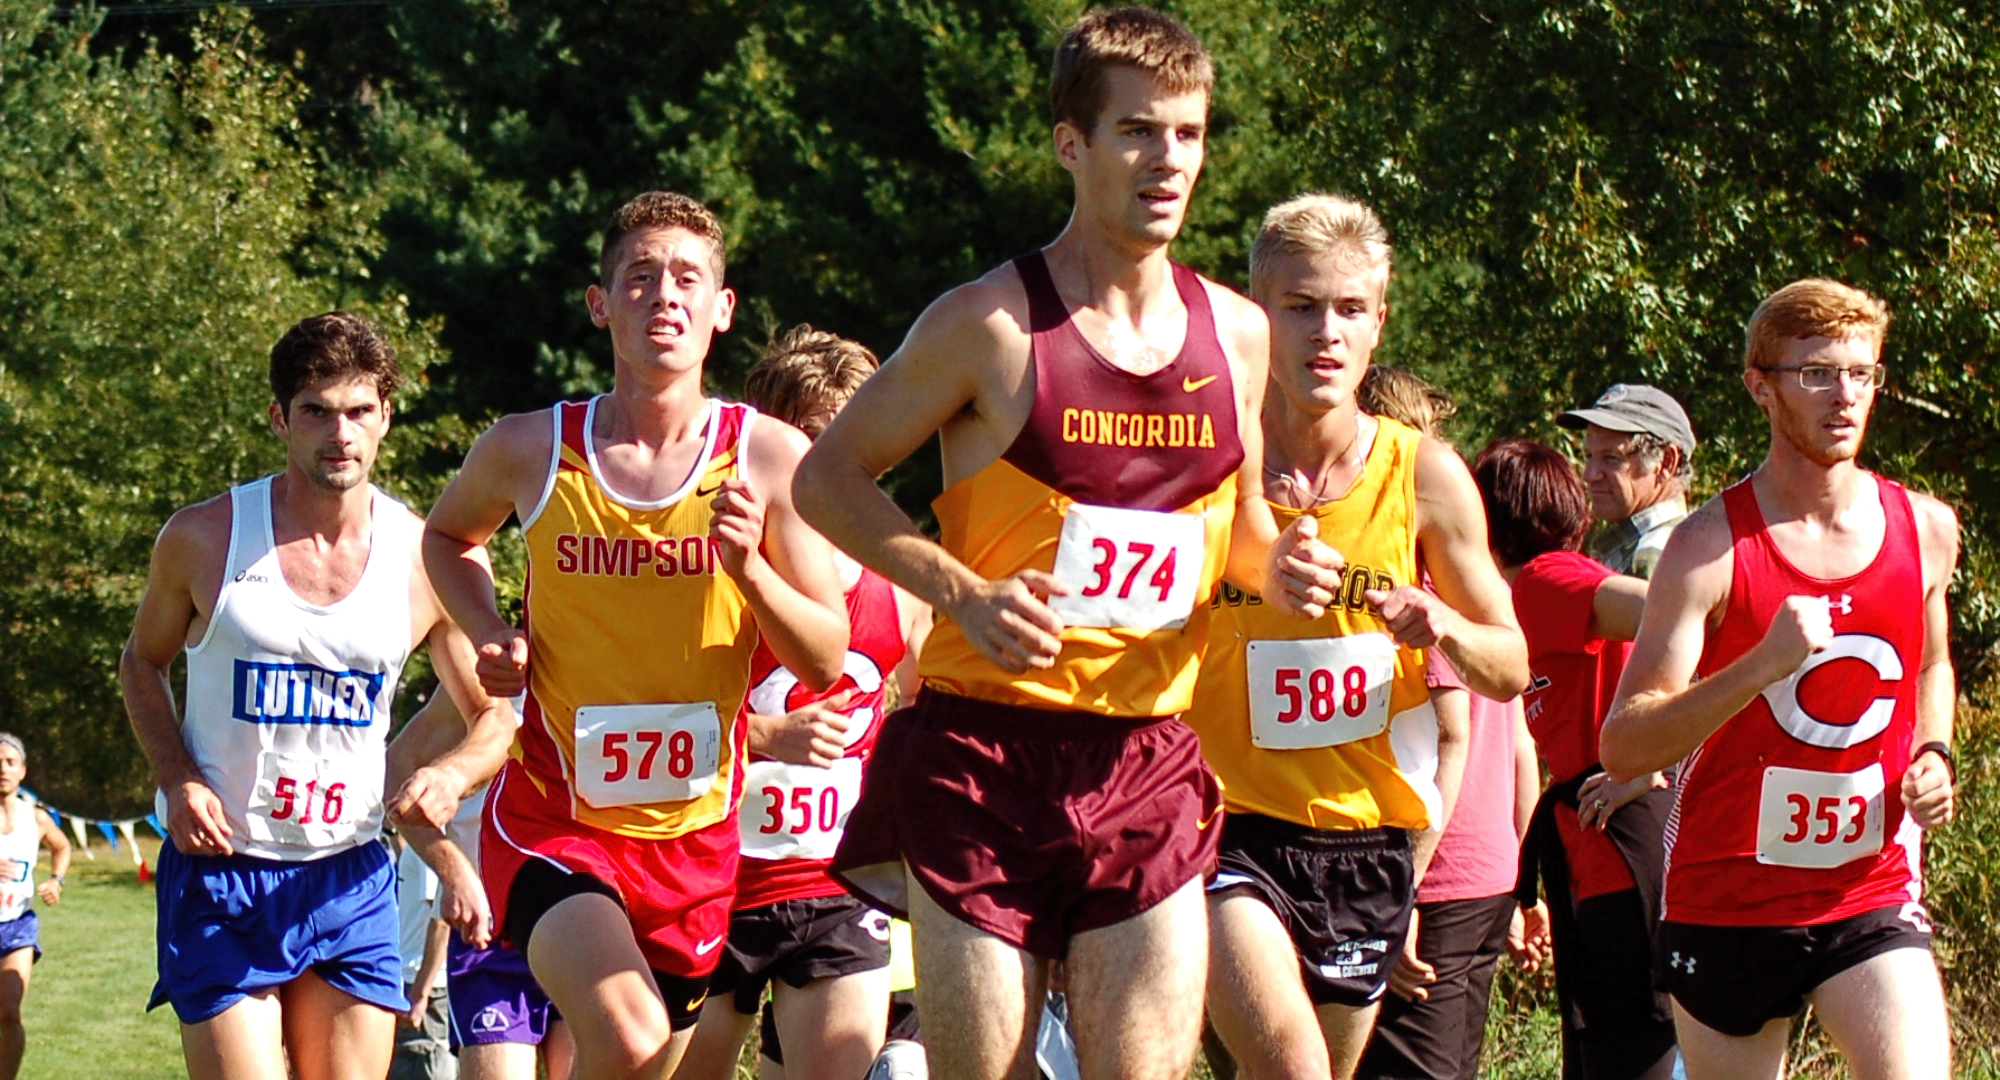 Senior Matthew Lillehaugen led the Cobbers at the NCAA Central Region Meet. Lillehaugen improved on his time and place from last year's regional meet.